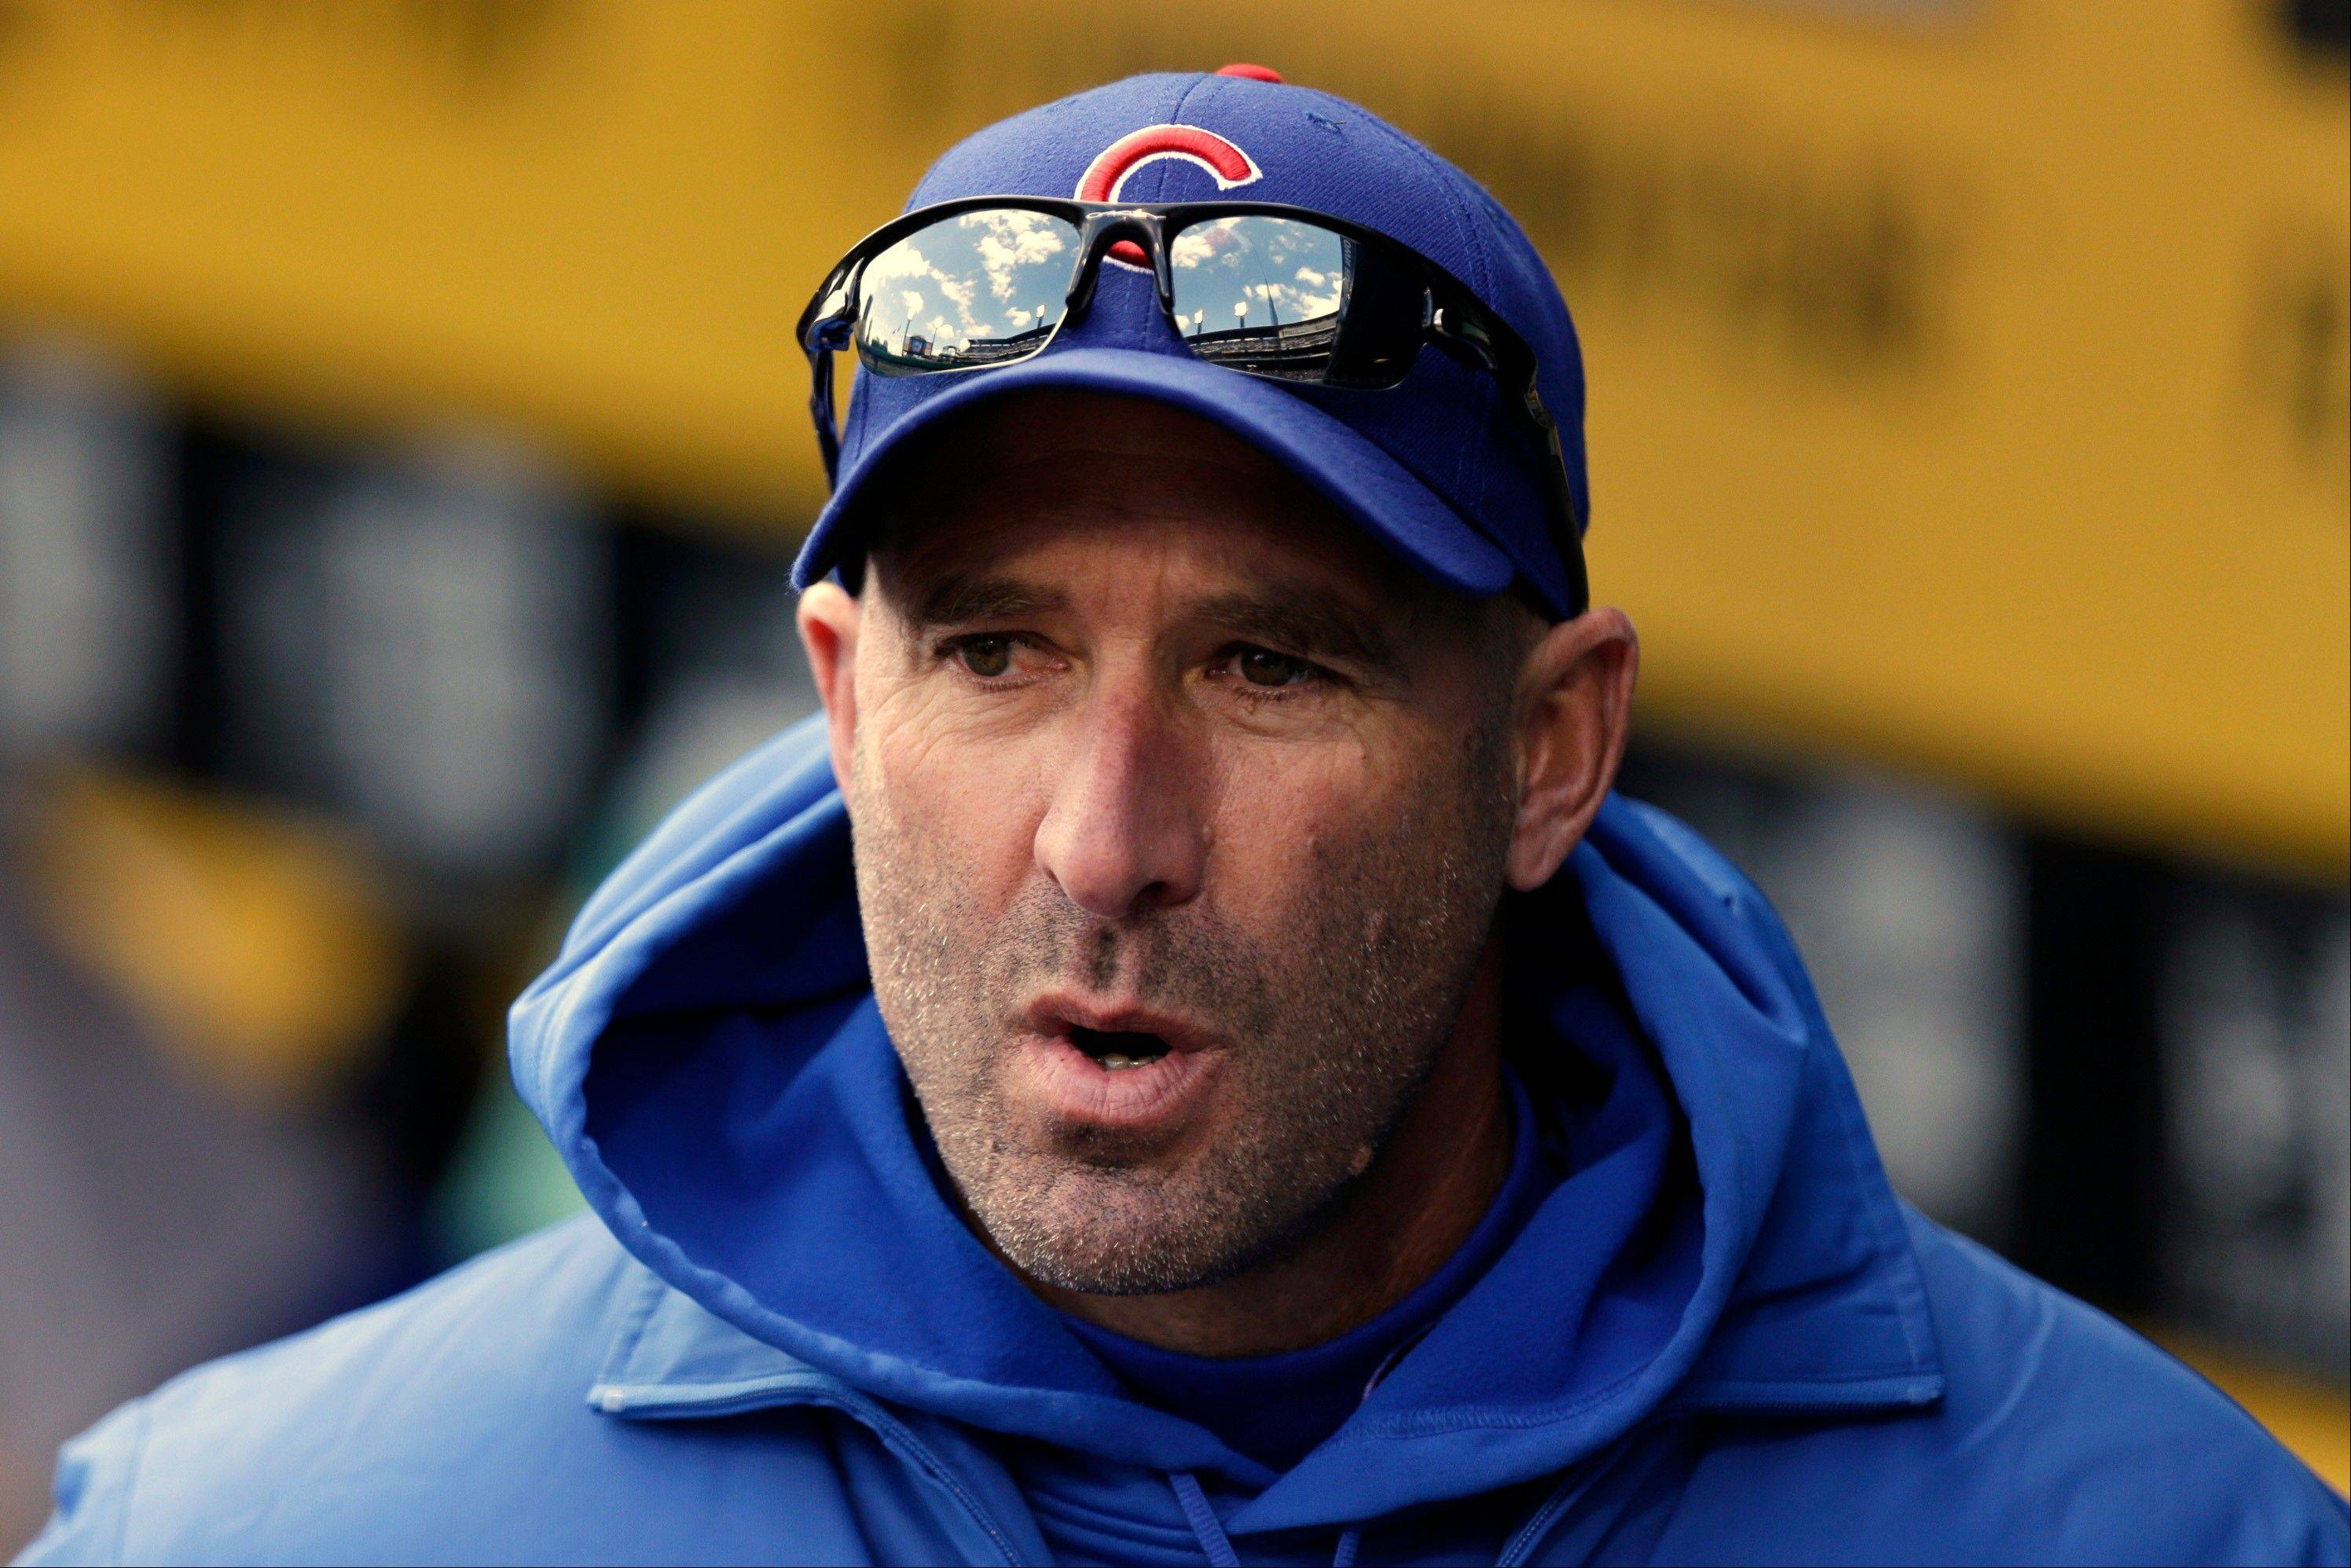 Cubs manager Dale Sveum prefers the advantages of the National League game over fol